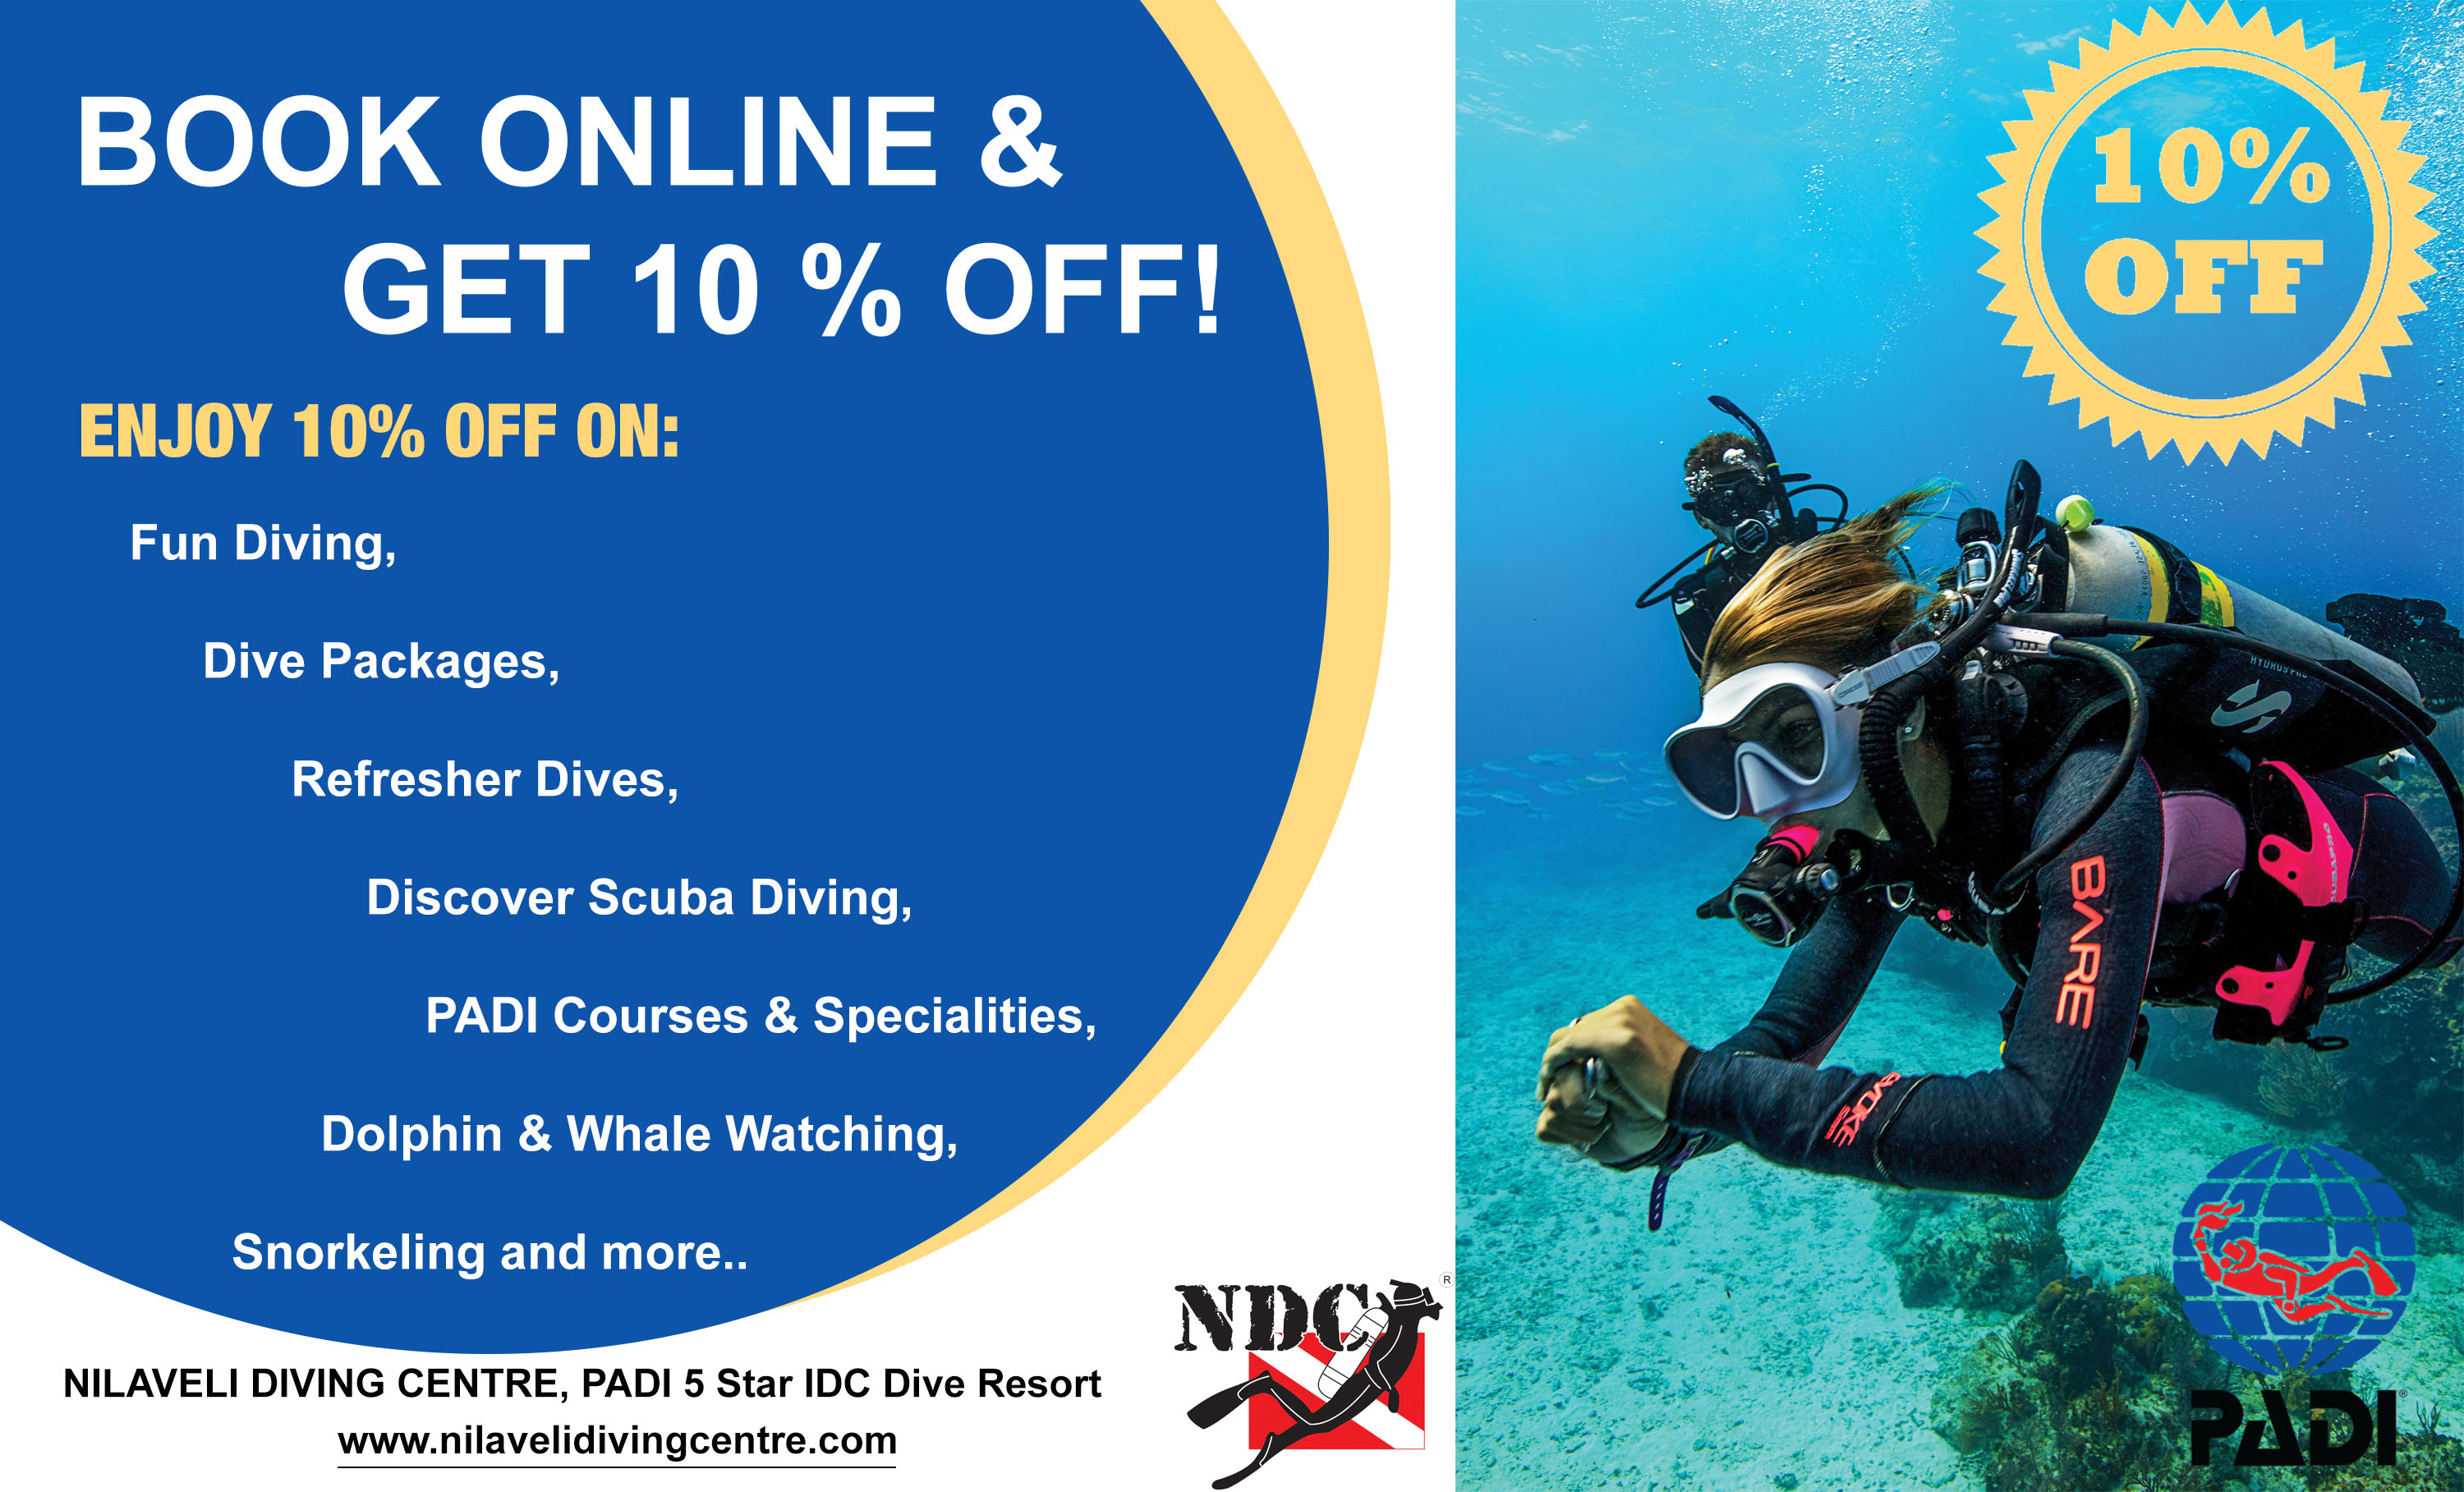 Get 10% OFF for online booking